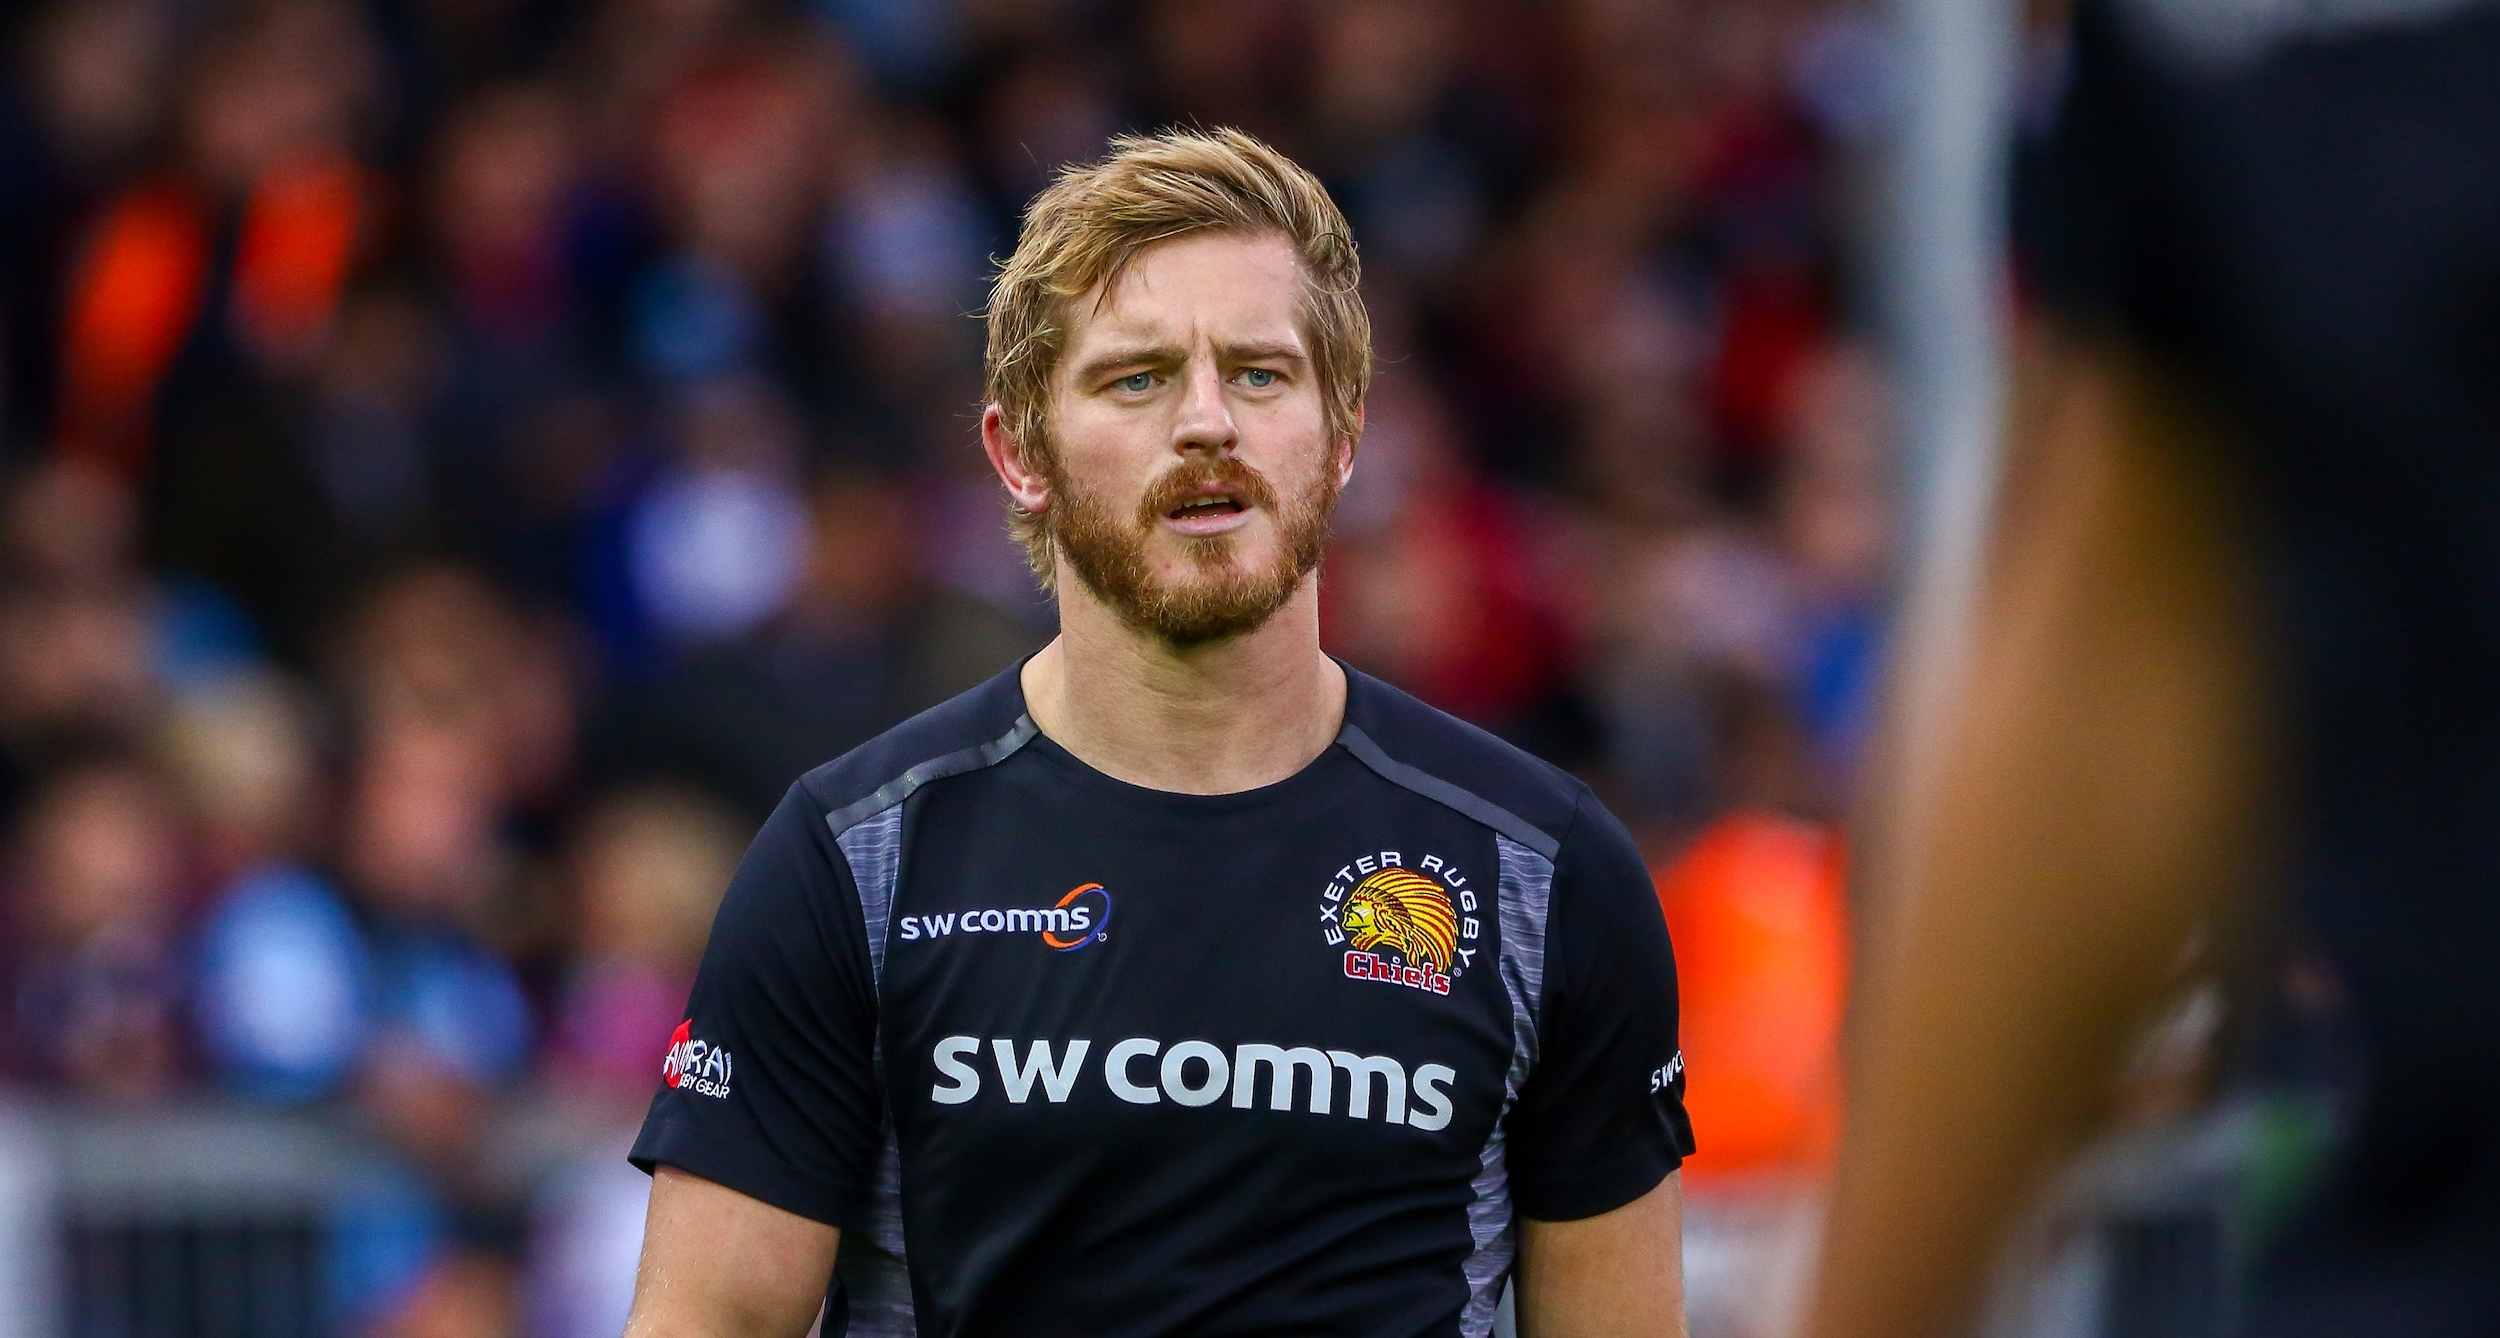 Exeter Chiefs Star takes on coaching role at Albion